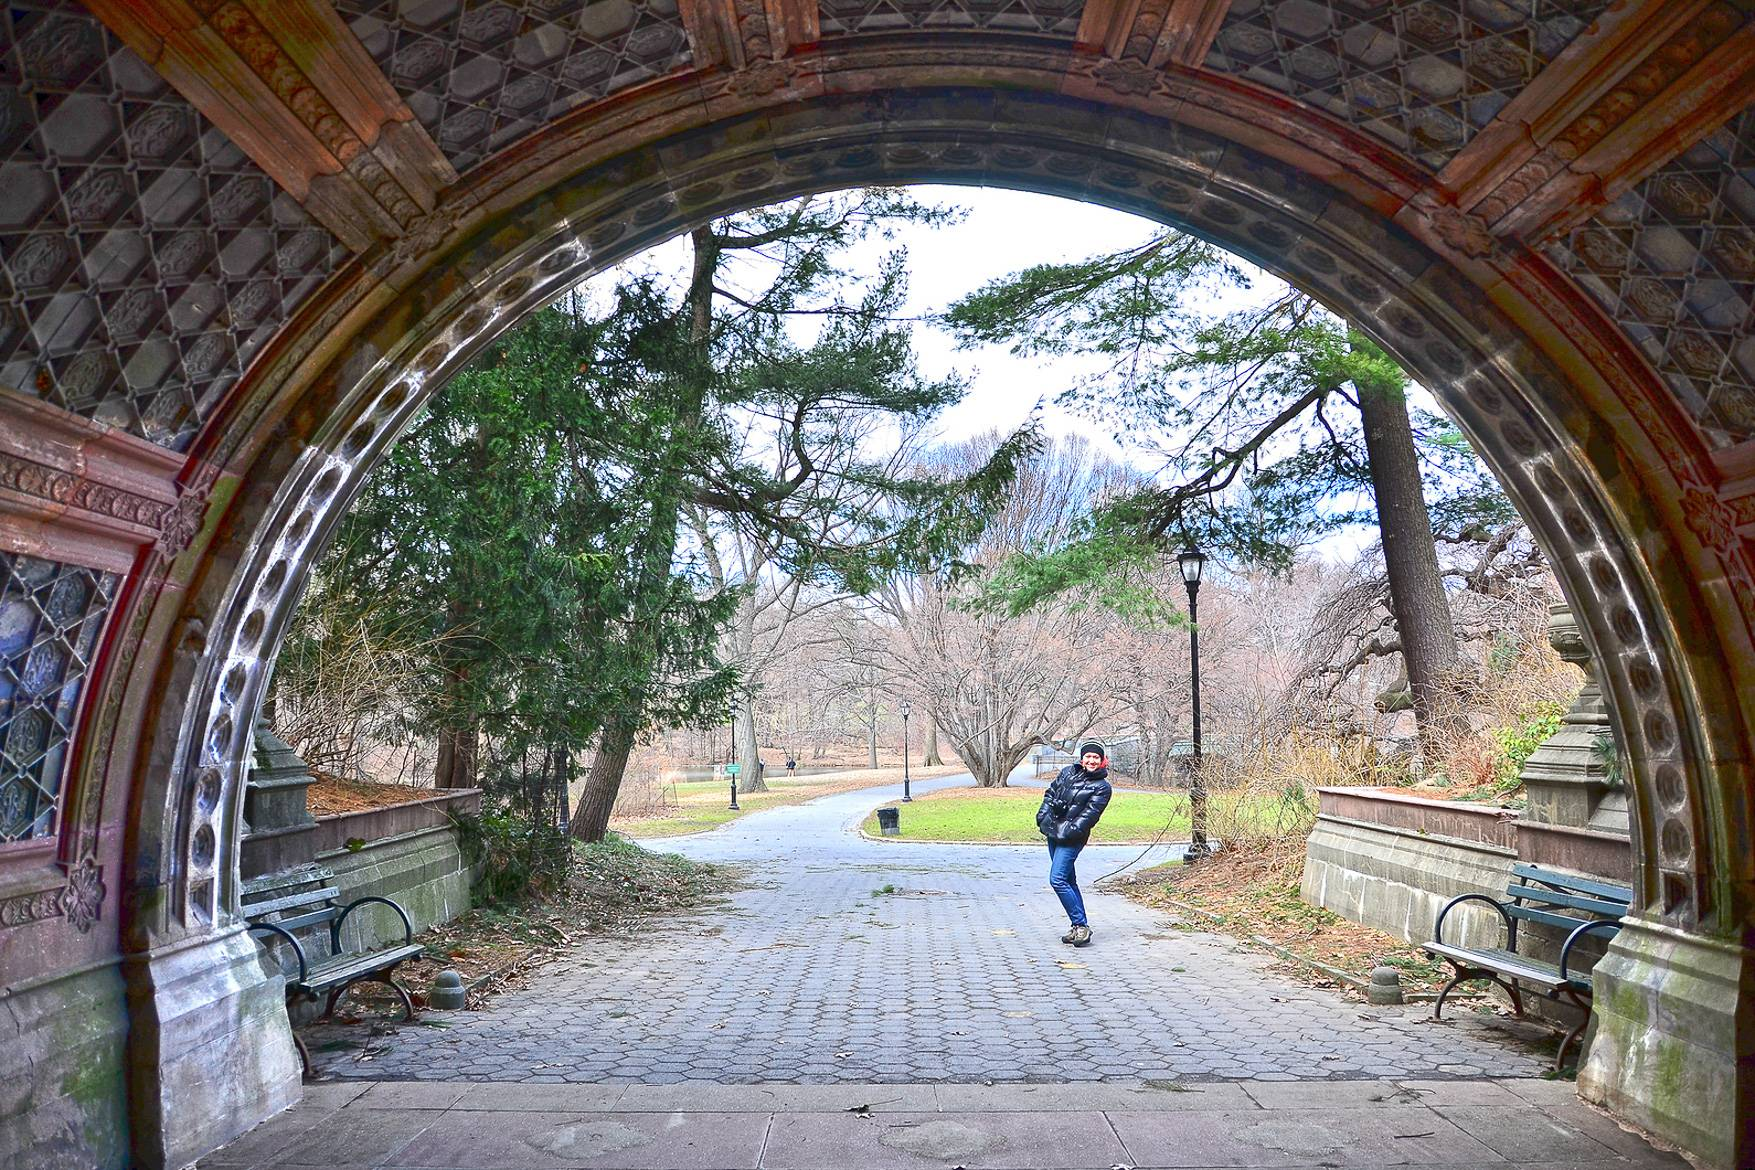 Image of a man under a bridge on a path in Prospect Park, Brooklyn